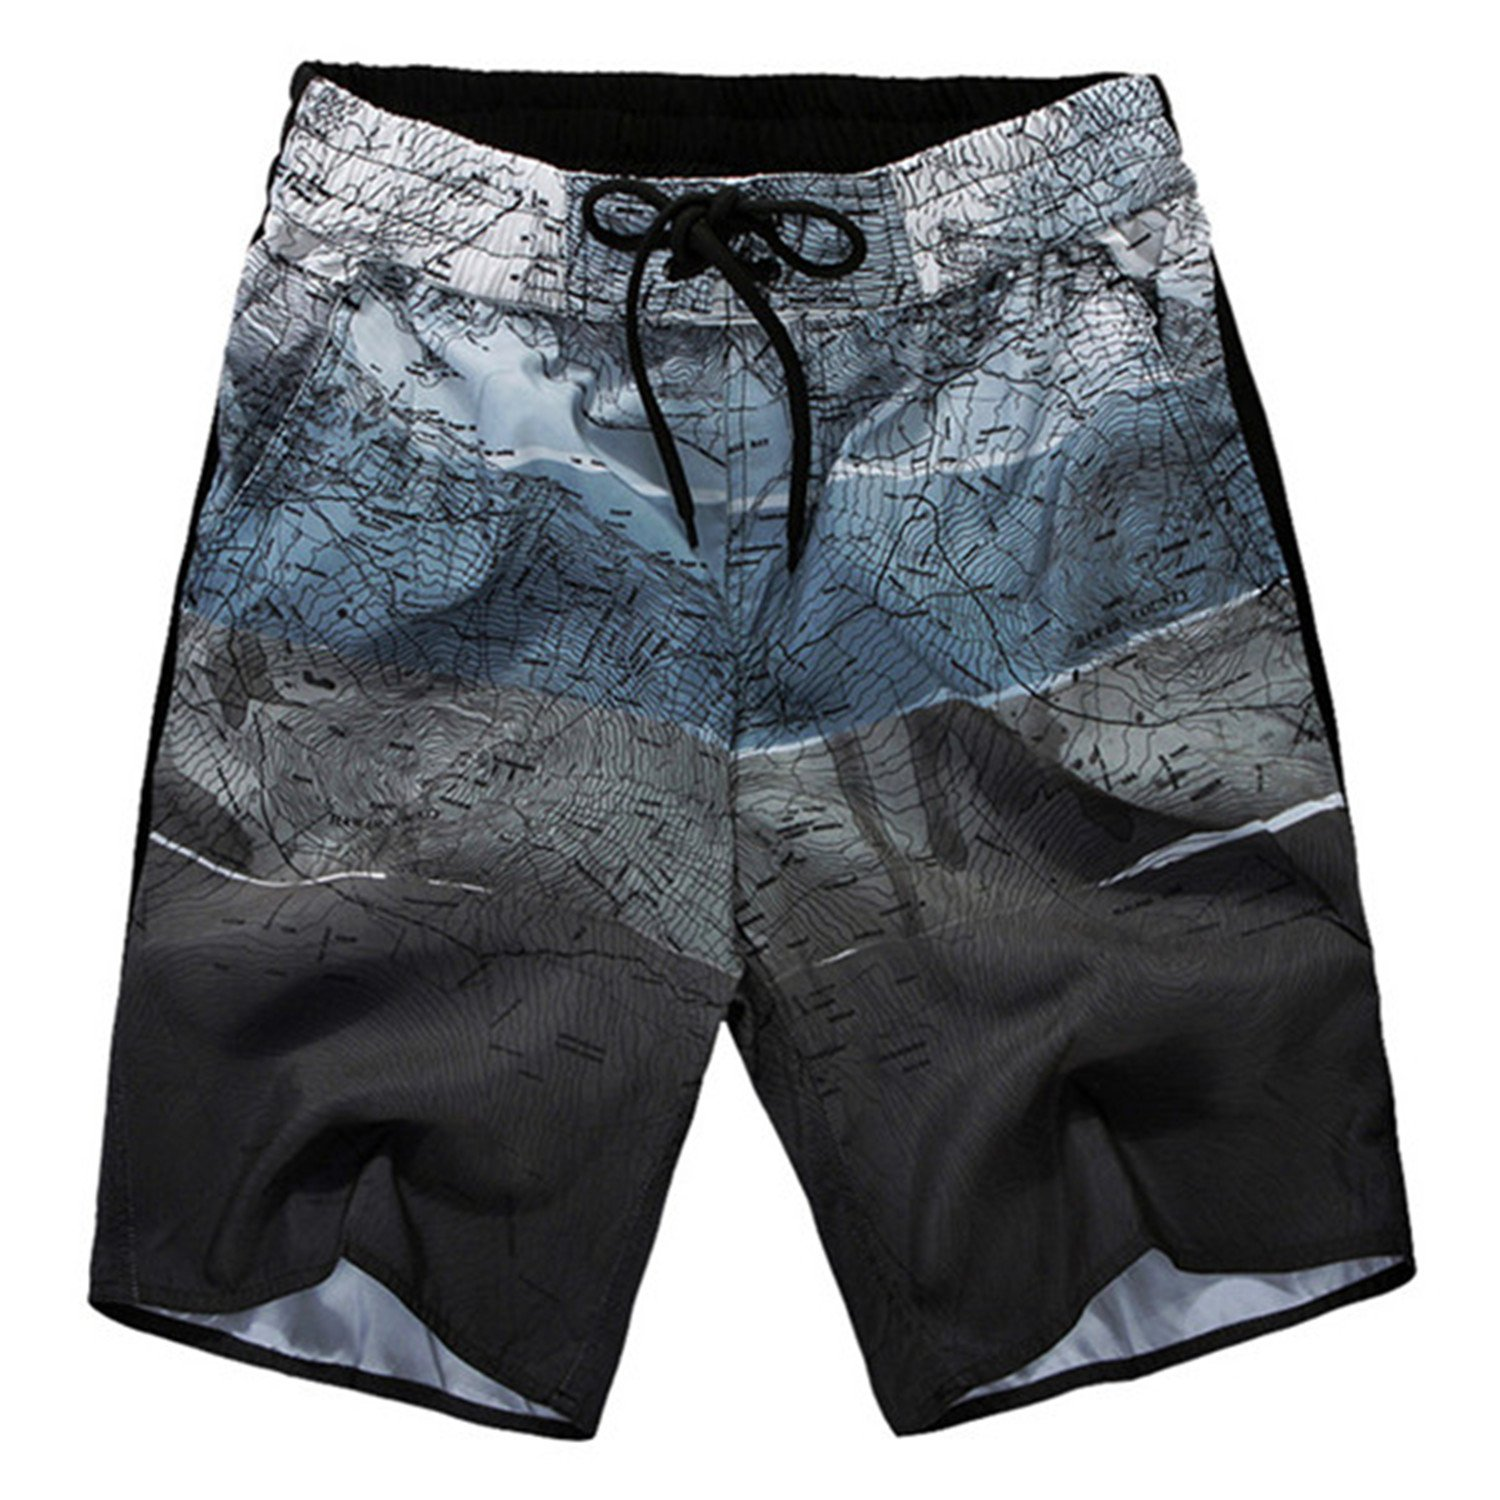 MEILIDONGREN Men's Boardshort Swimwear Beach Pants Trunk Shorts